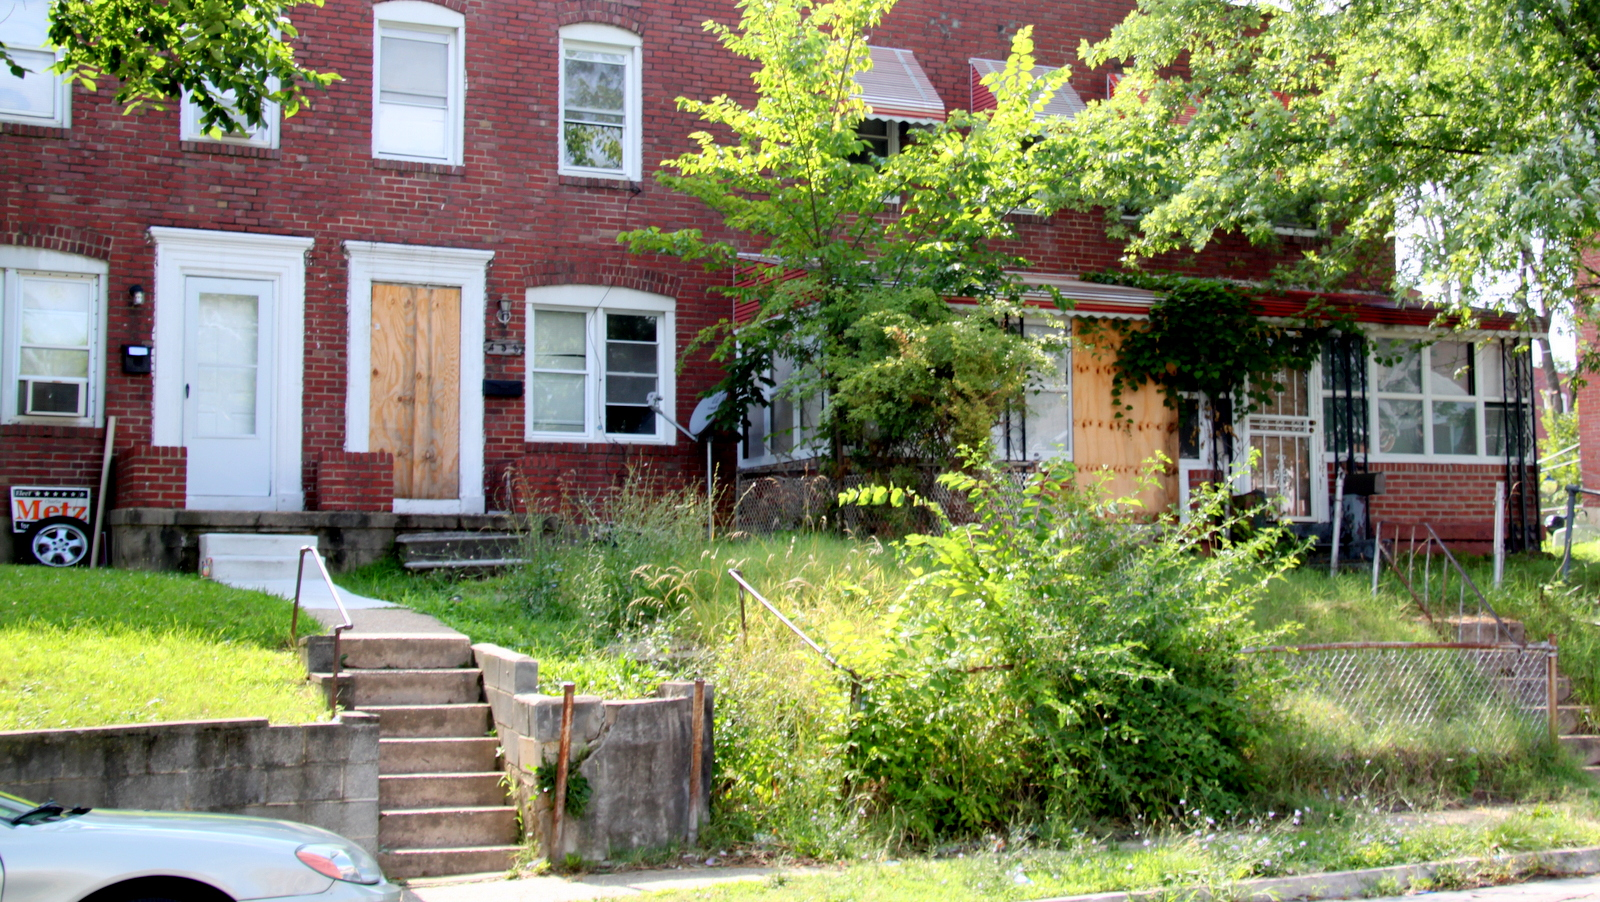 South Baltimore leaders say their agreement with Sagamore Development will help lift up their communities. Vacant houses in Cherry Hill. (Fern Shen)